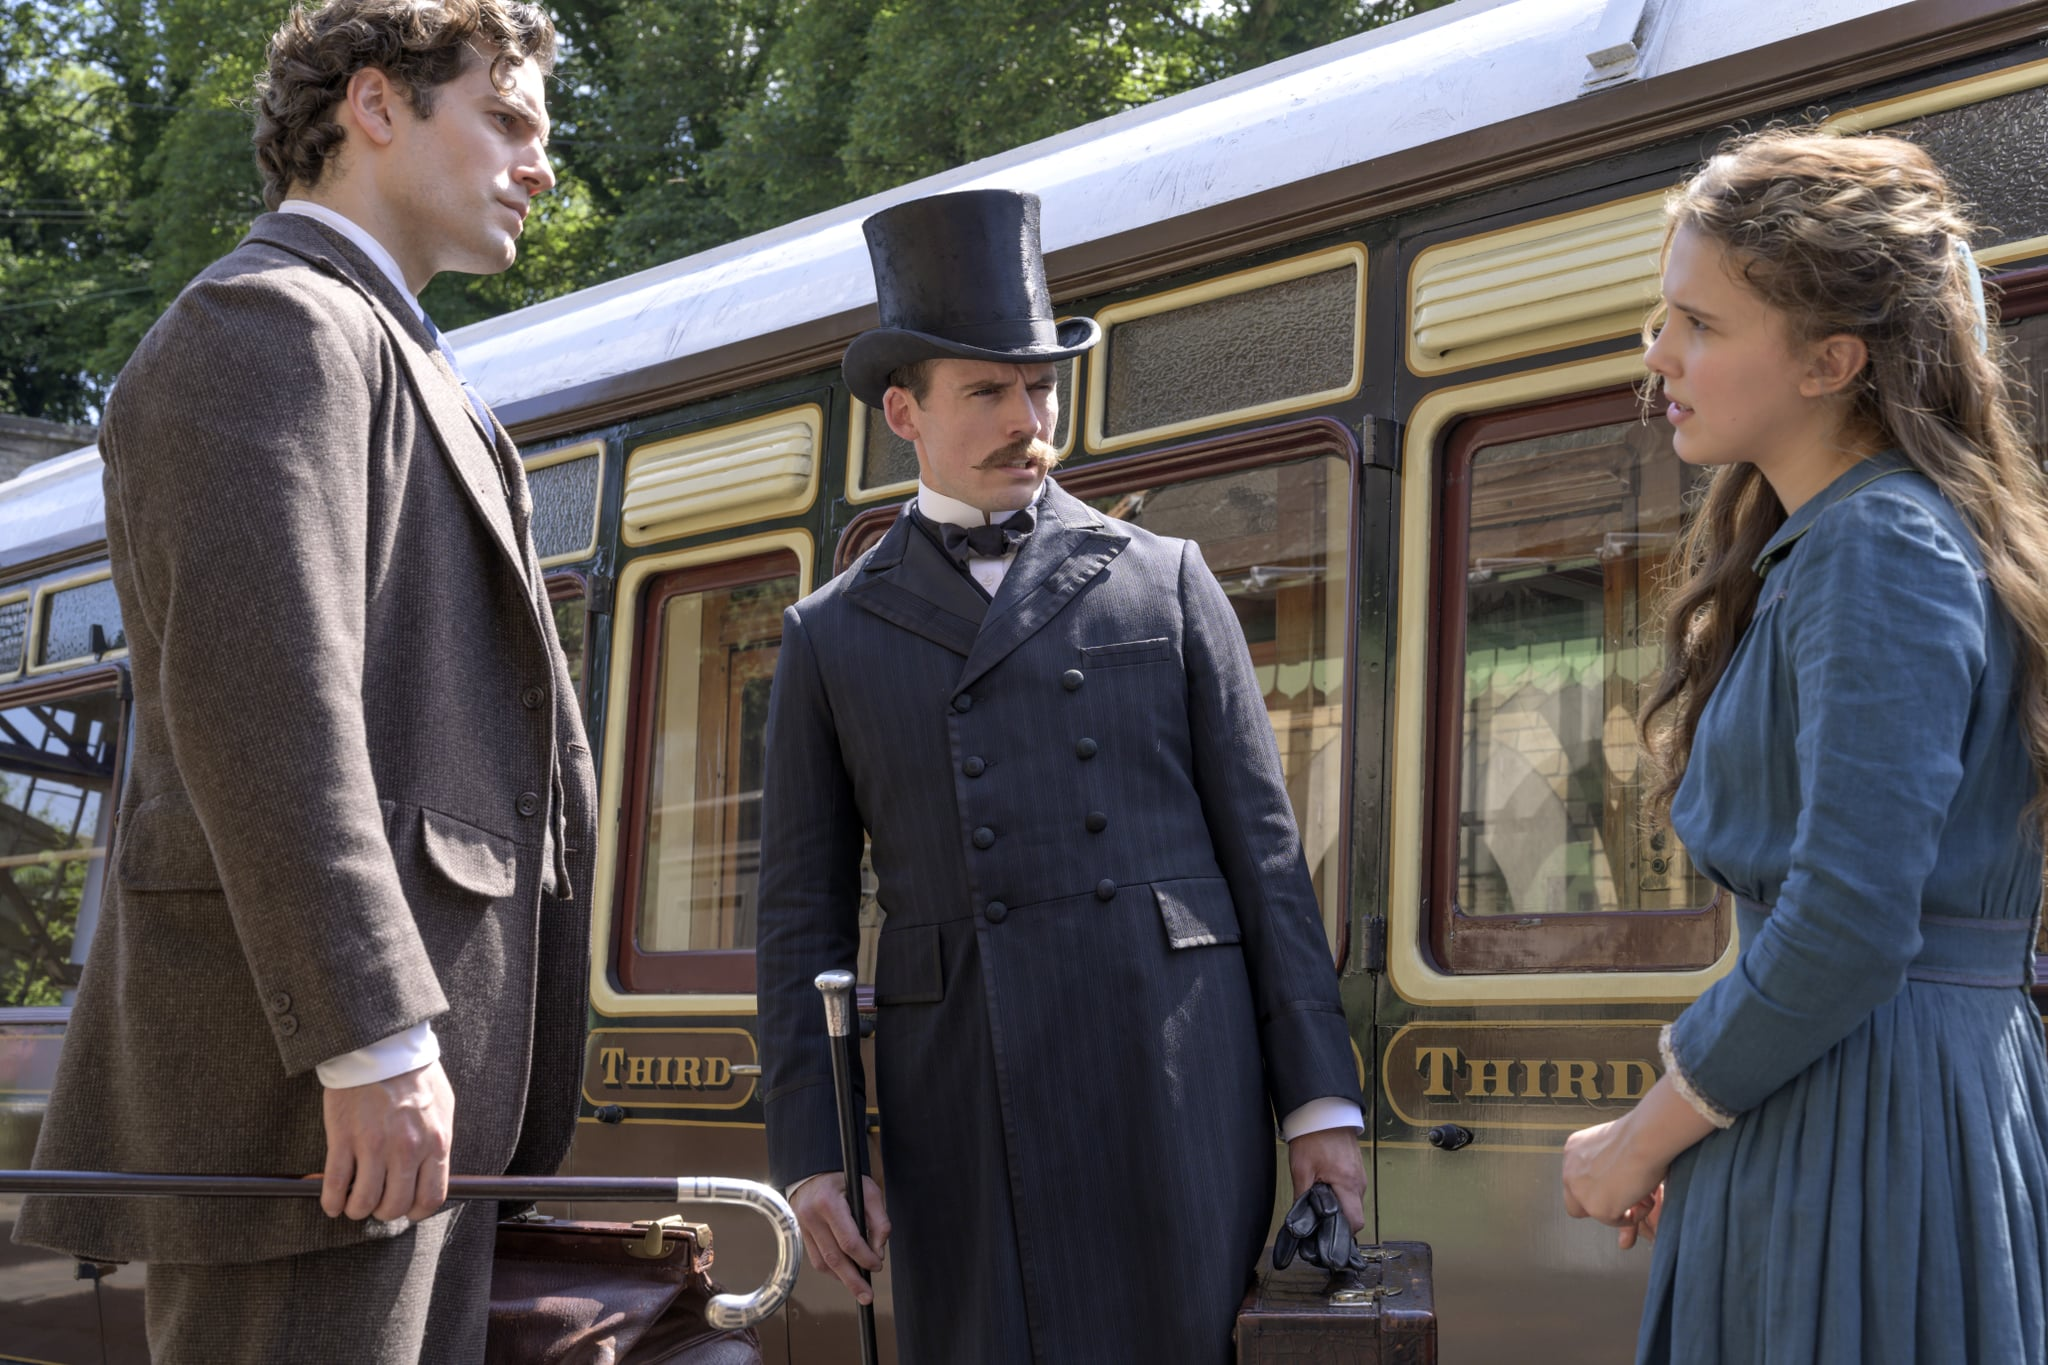 ENOLA HOLMES (L to R) HENRY CAVILL as Sherlock Holmes, SAM CLAFLIN as MYCROFT HOLMES, MILLIE BOBBY BROWN as ENOLA HOLMES. Cr. ALEX BAILEY/LEGENDARY ©2020